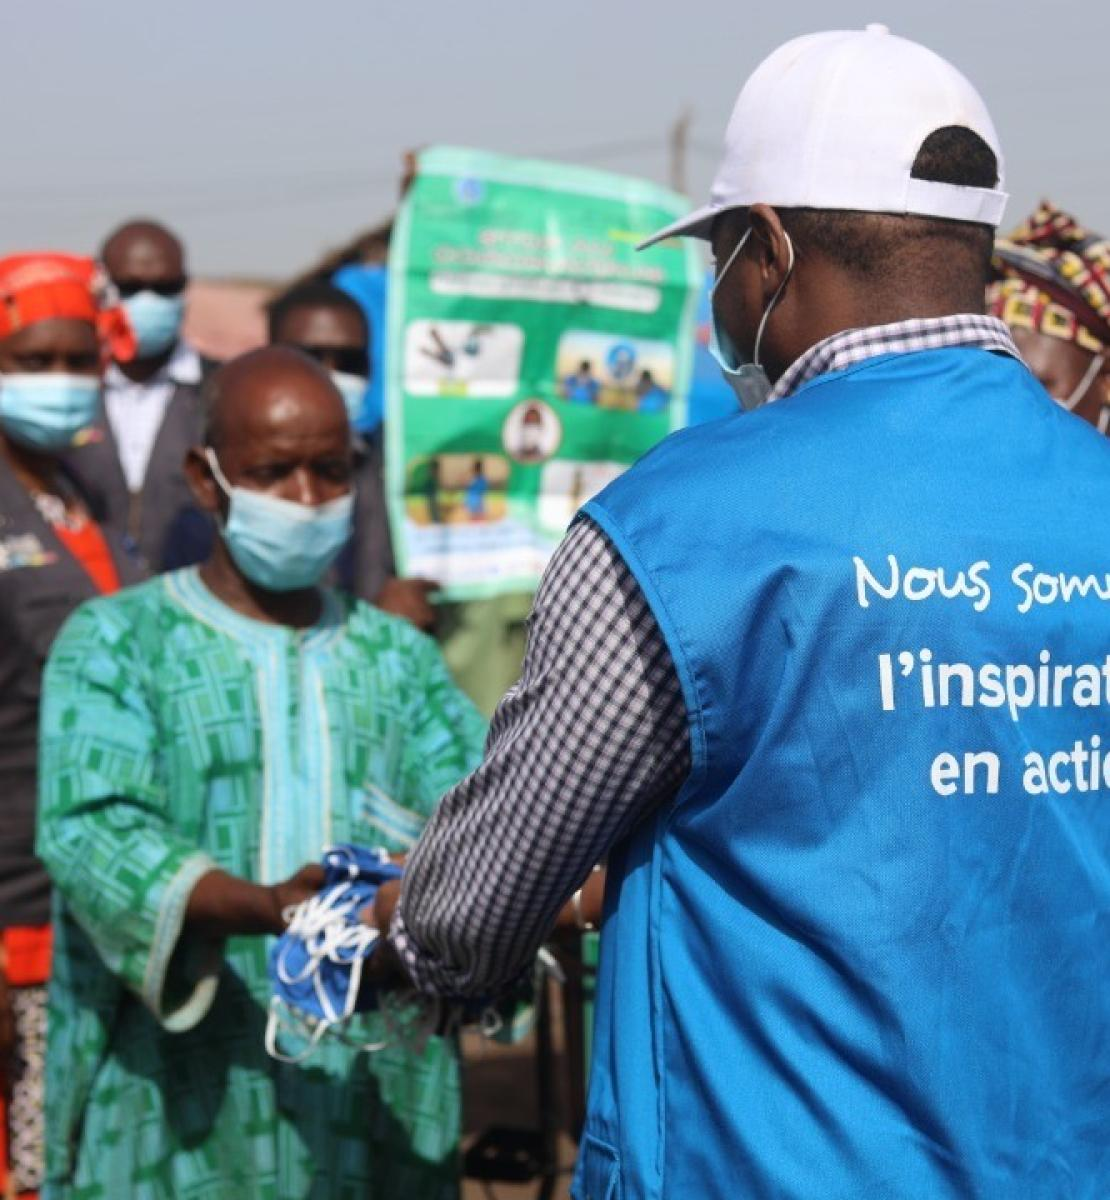 A United Nations Volunteer in a blue vest hands a man a bag. Several people stand behind the man receiving the package.